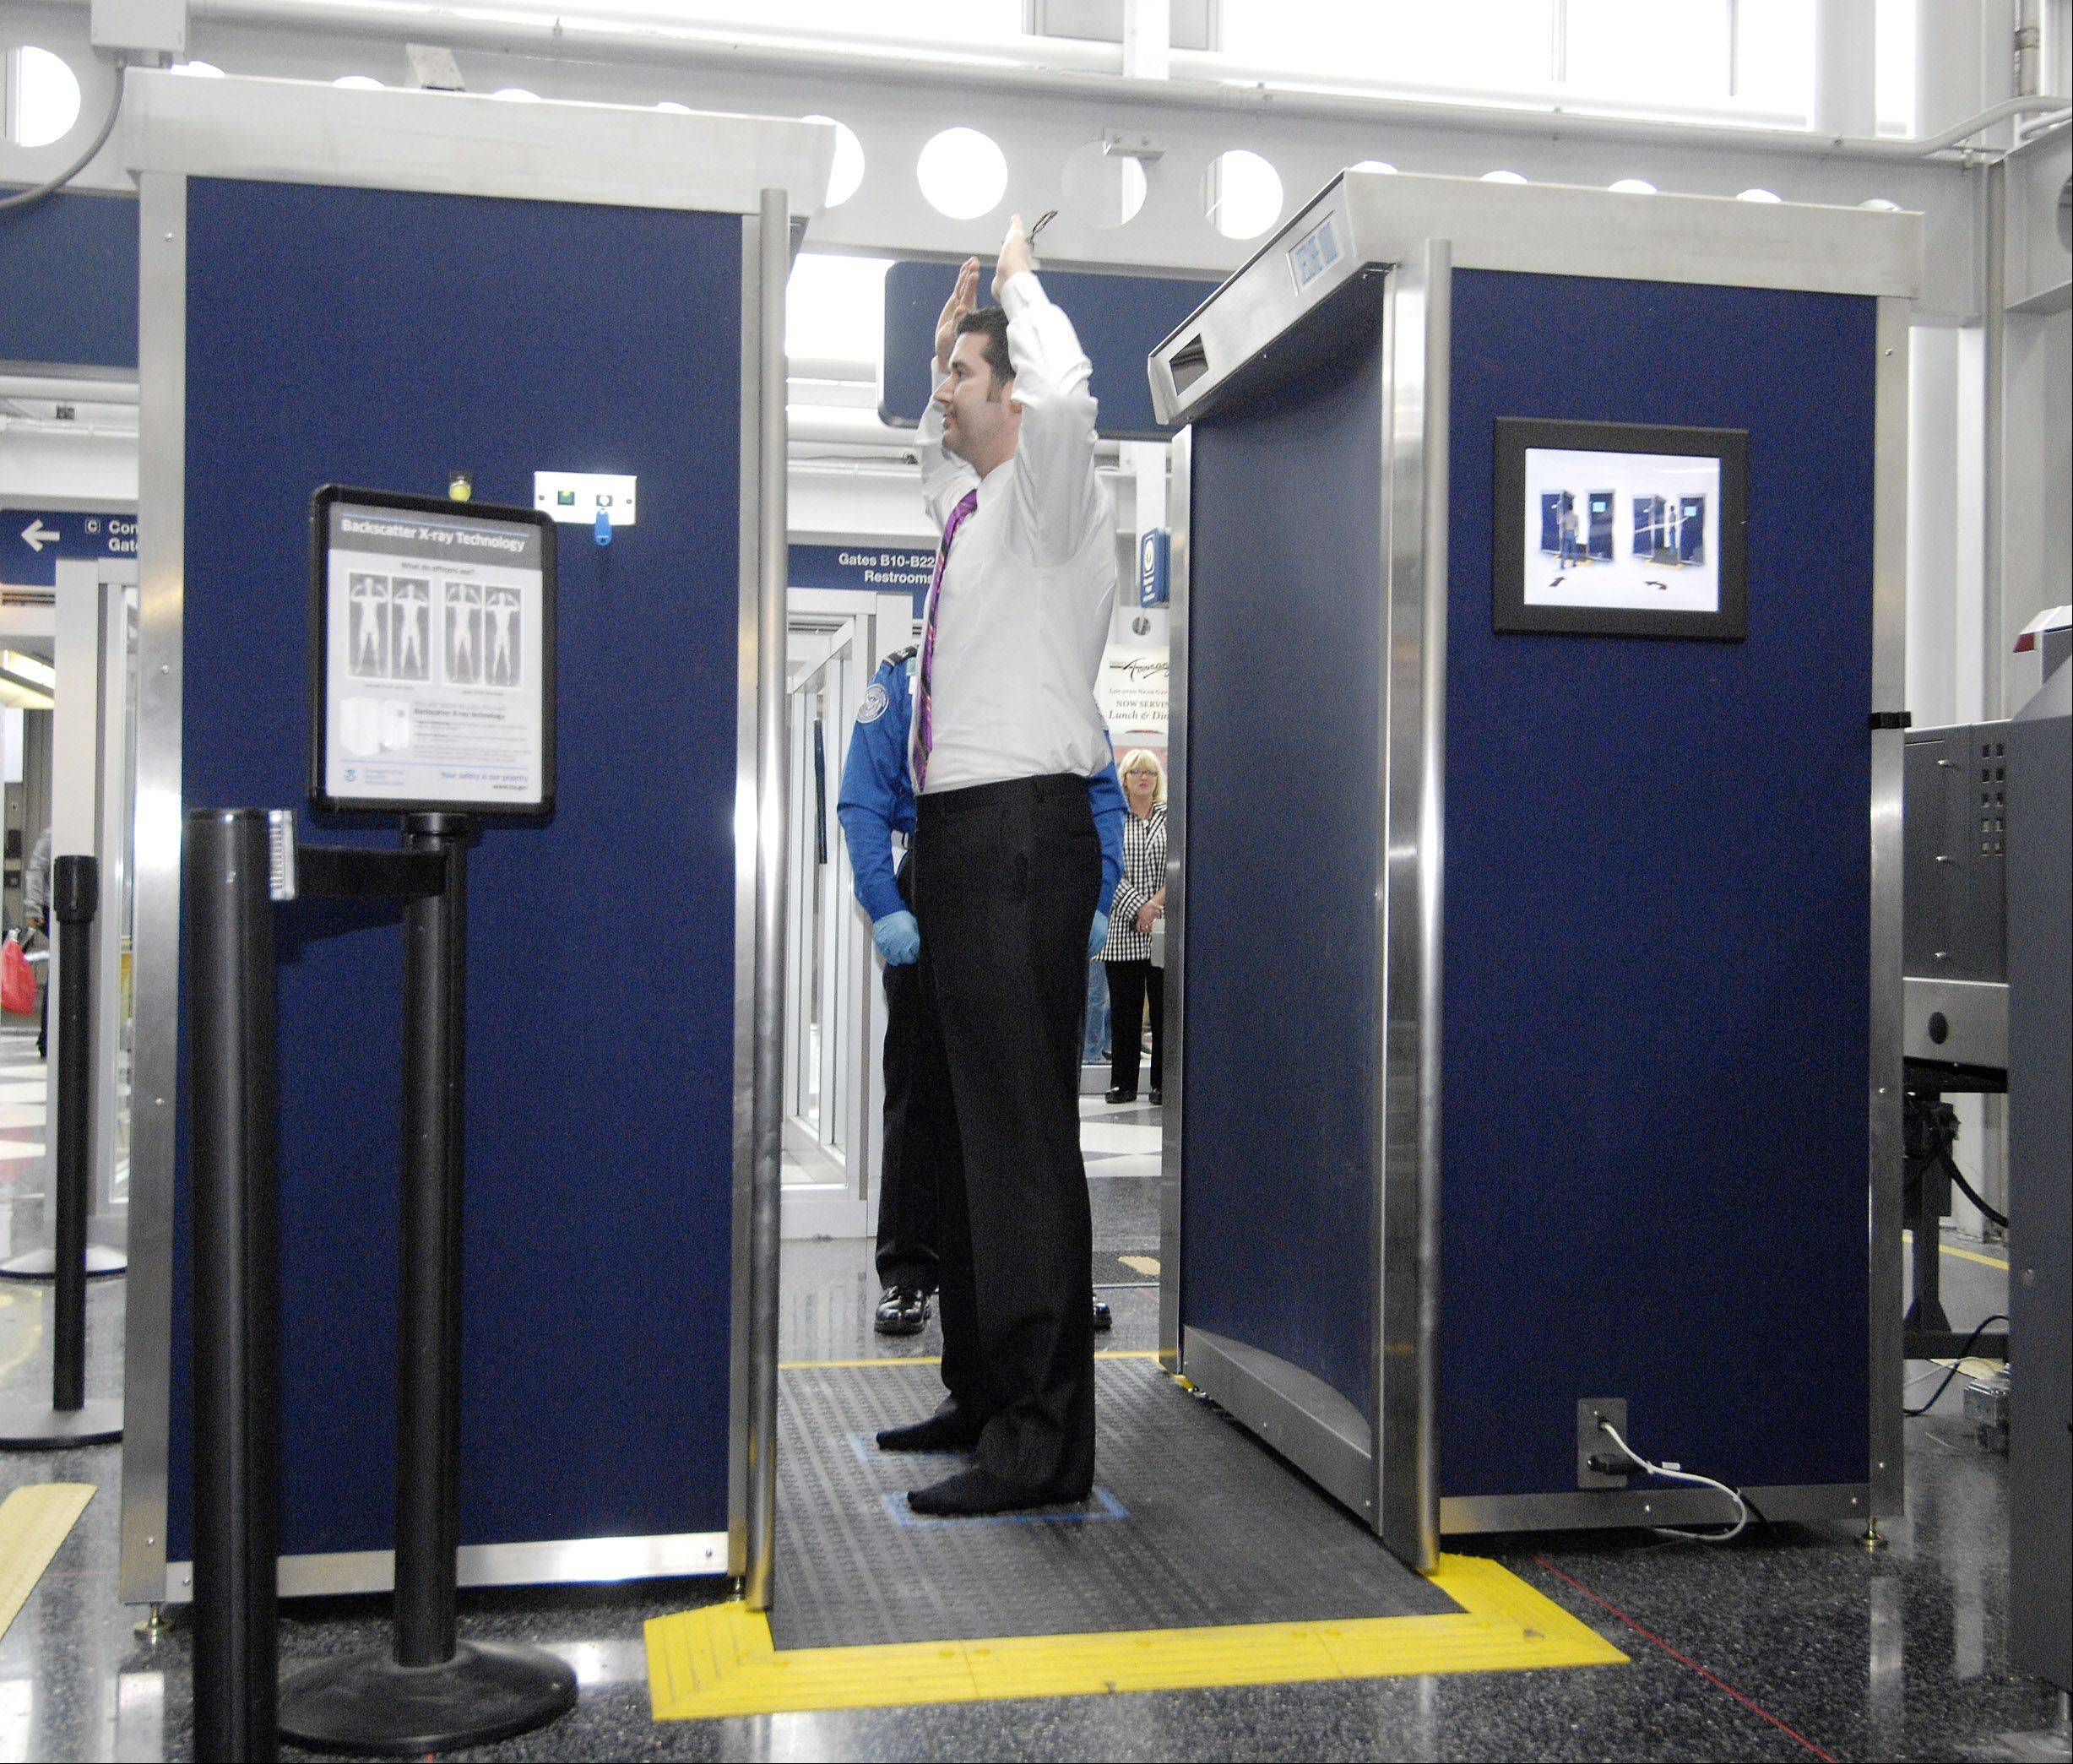 Twenty-three full-body X-ray scanners are being removed from O'Hare International Airport to make room for scanners that can move more passengers through security.